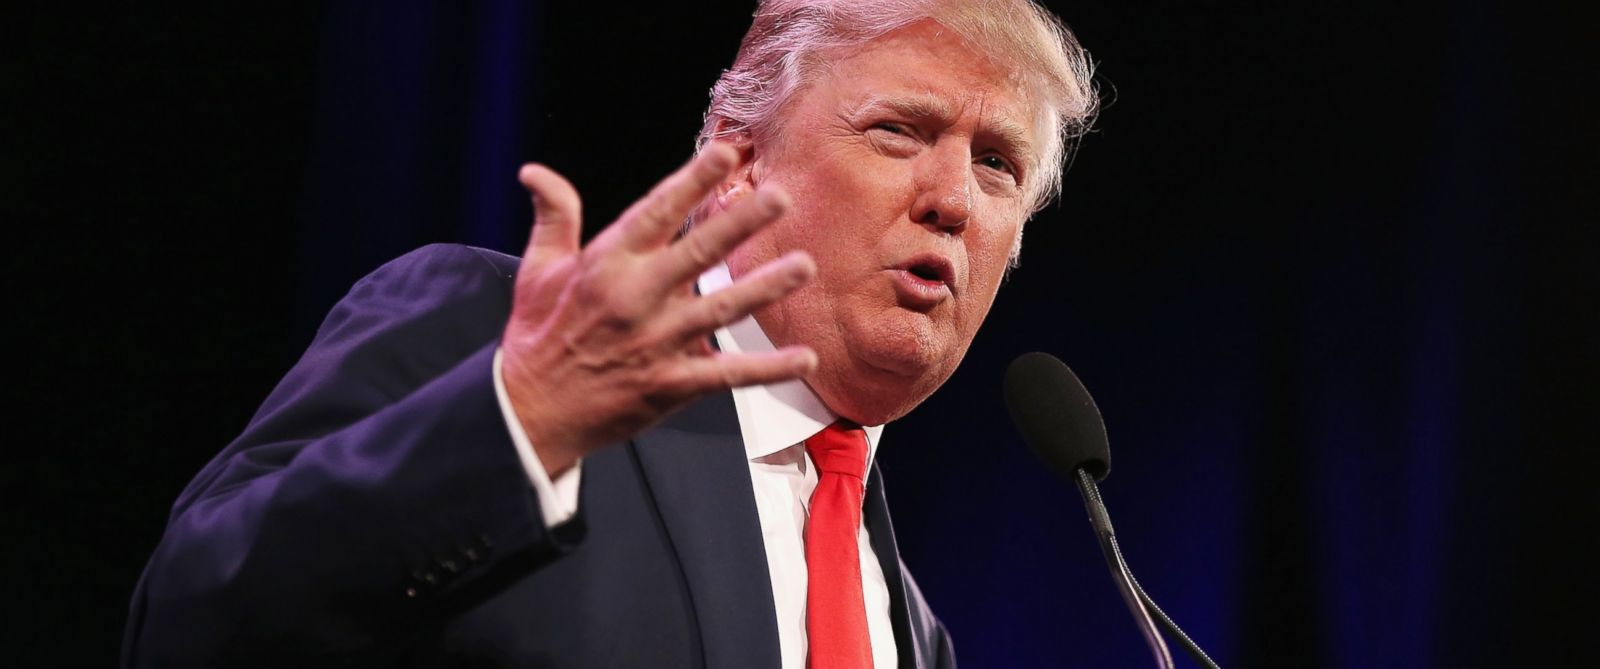 PHOTO: Donald Trump speaks to guests at the Iowa Freedom Summit on Jan. 24, 2015 in Des Moines, Iowa.